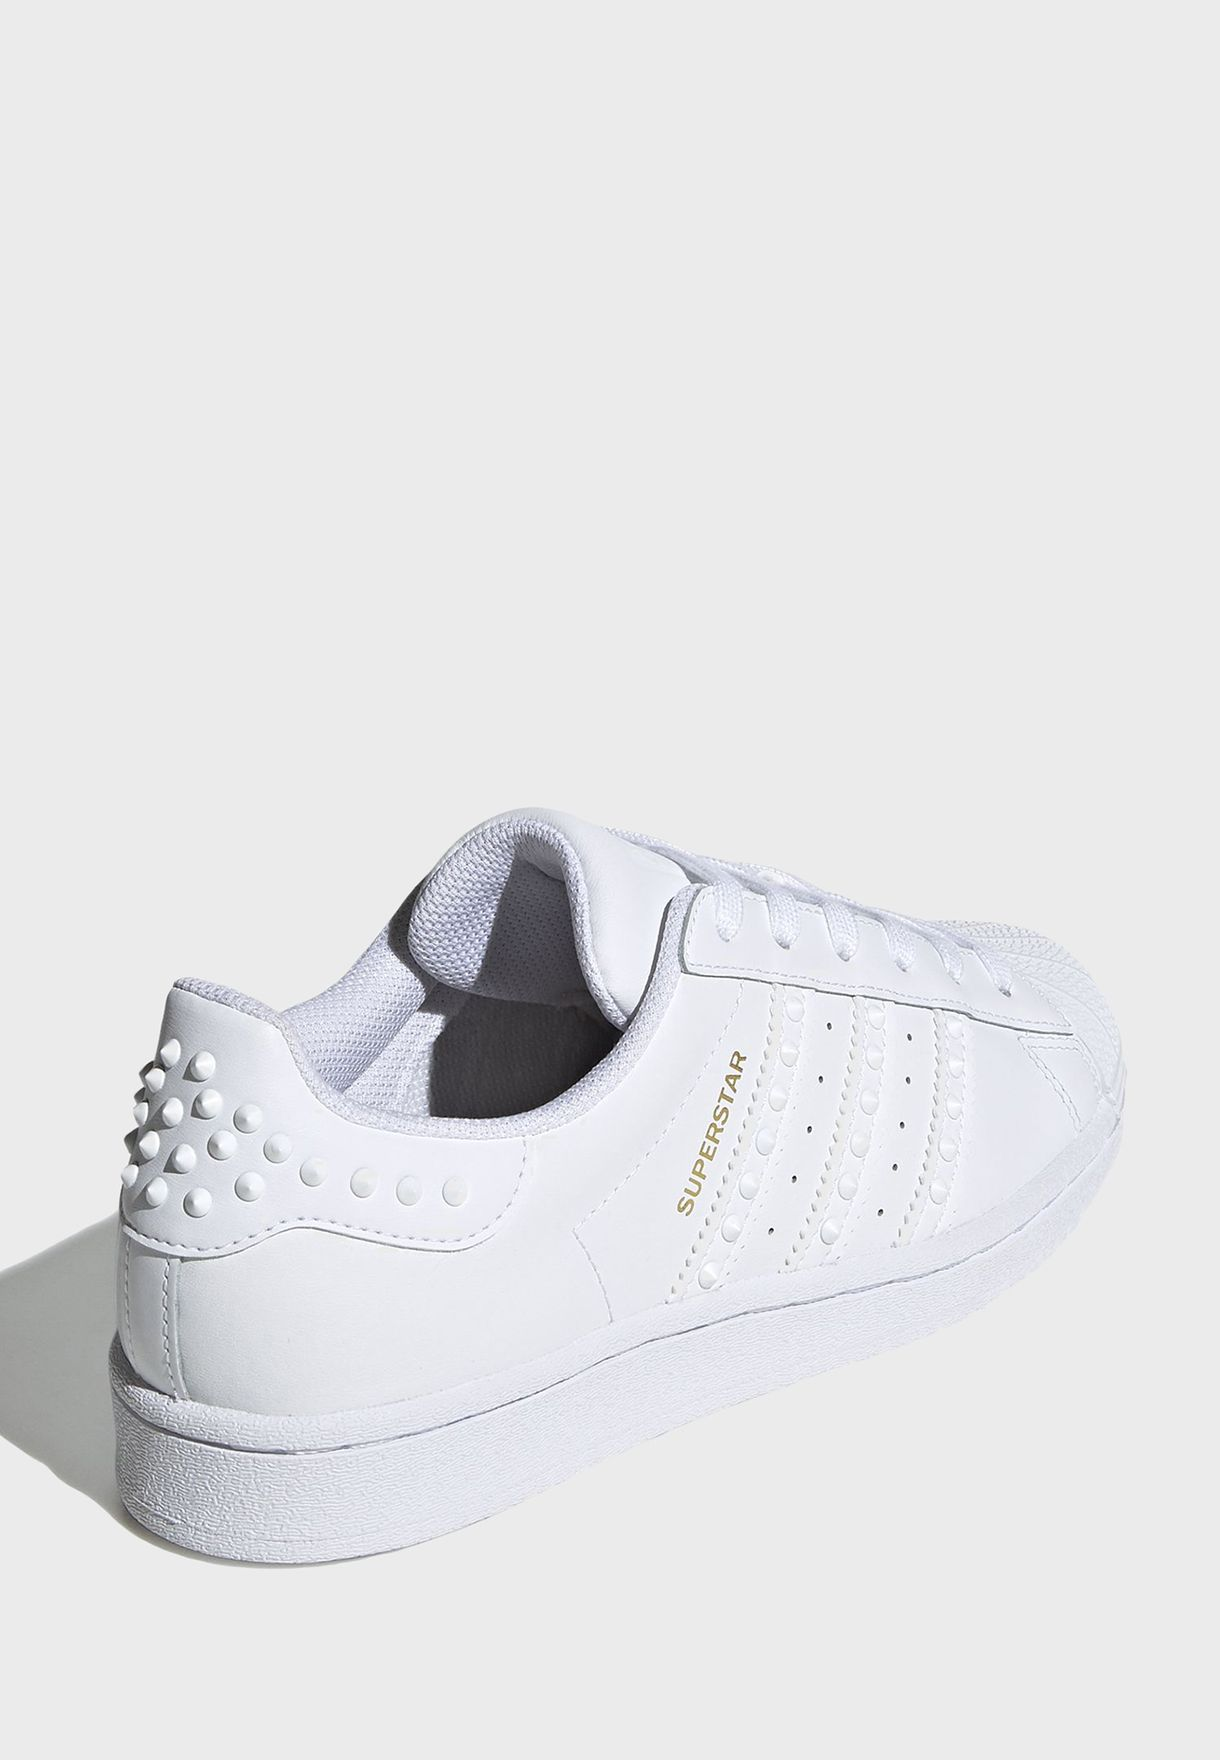 Adidas Originals Superstar - Brand Shoes